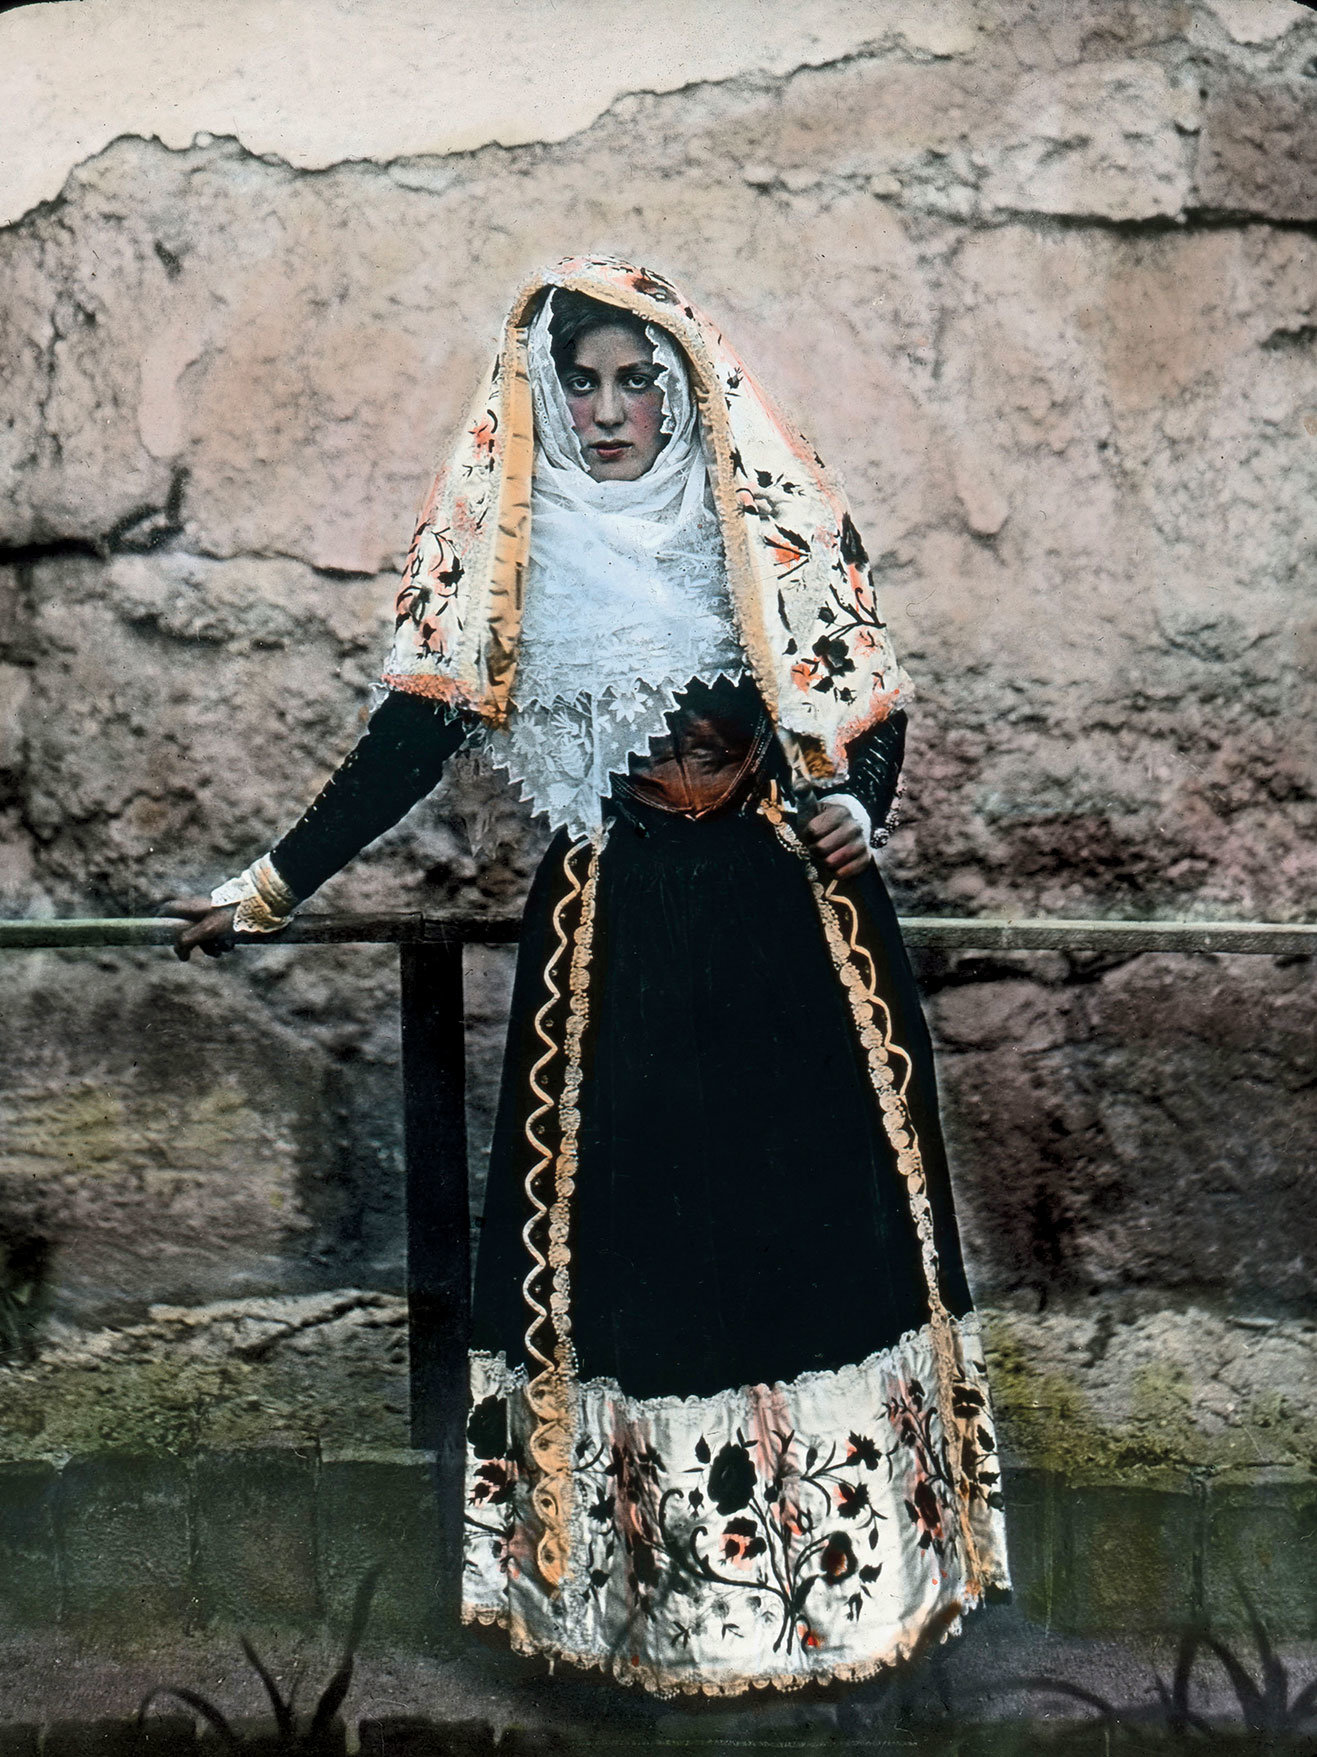 A Sardinian woman from around 1910 dressed in decorative clothing native to the island. The patterns and style of dress are specific to each town. Traditional Sardinian weavings are patterned with small raised bumps of thread, called pibiones. Credit United Archives/Carl Simon/Granger